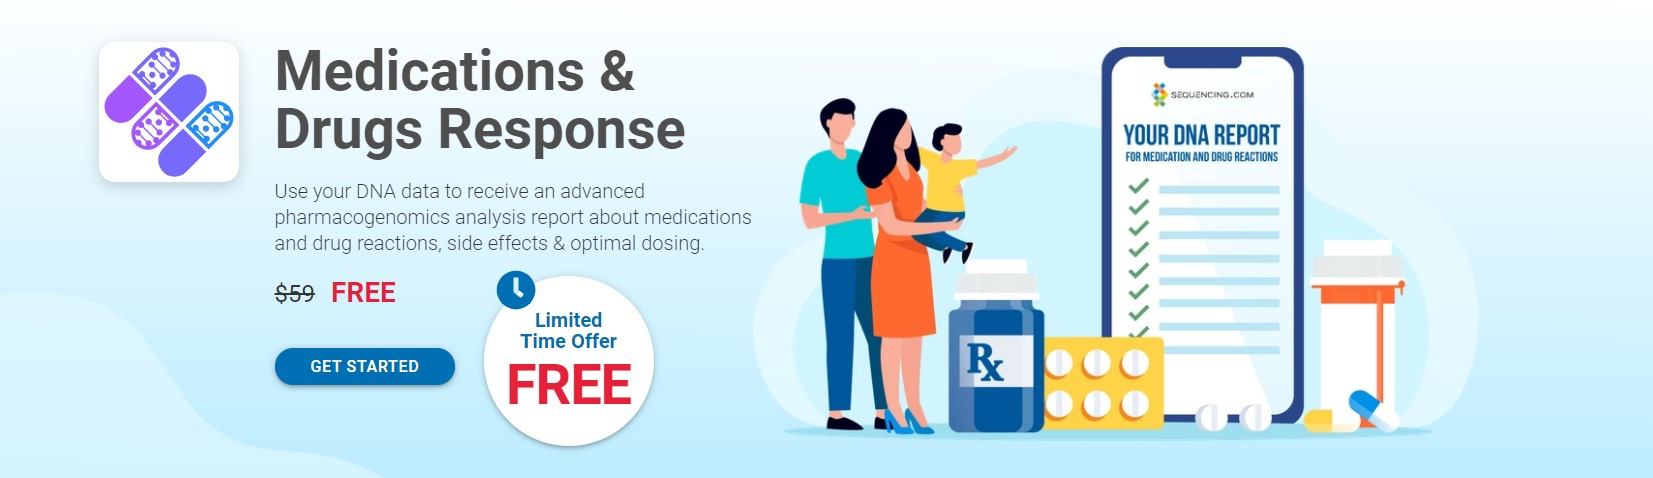 medications and drugs response